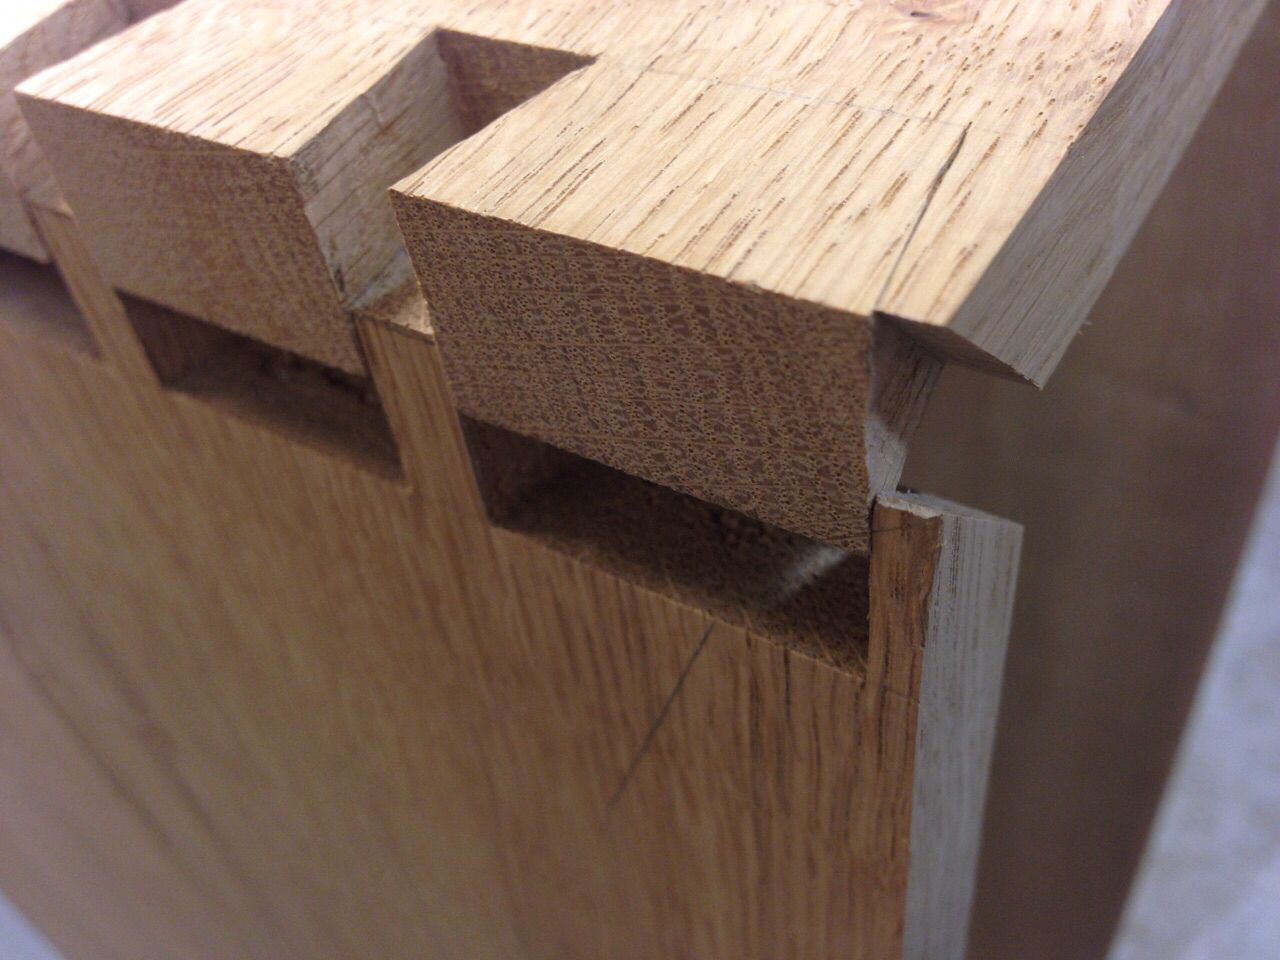 steel chair joints swivel gumtree details plywood metal furniture joint wood detail cnc